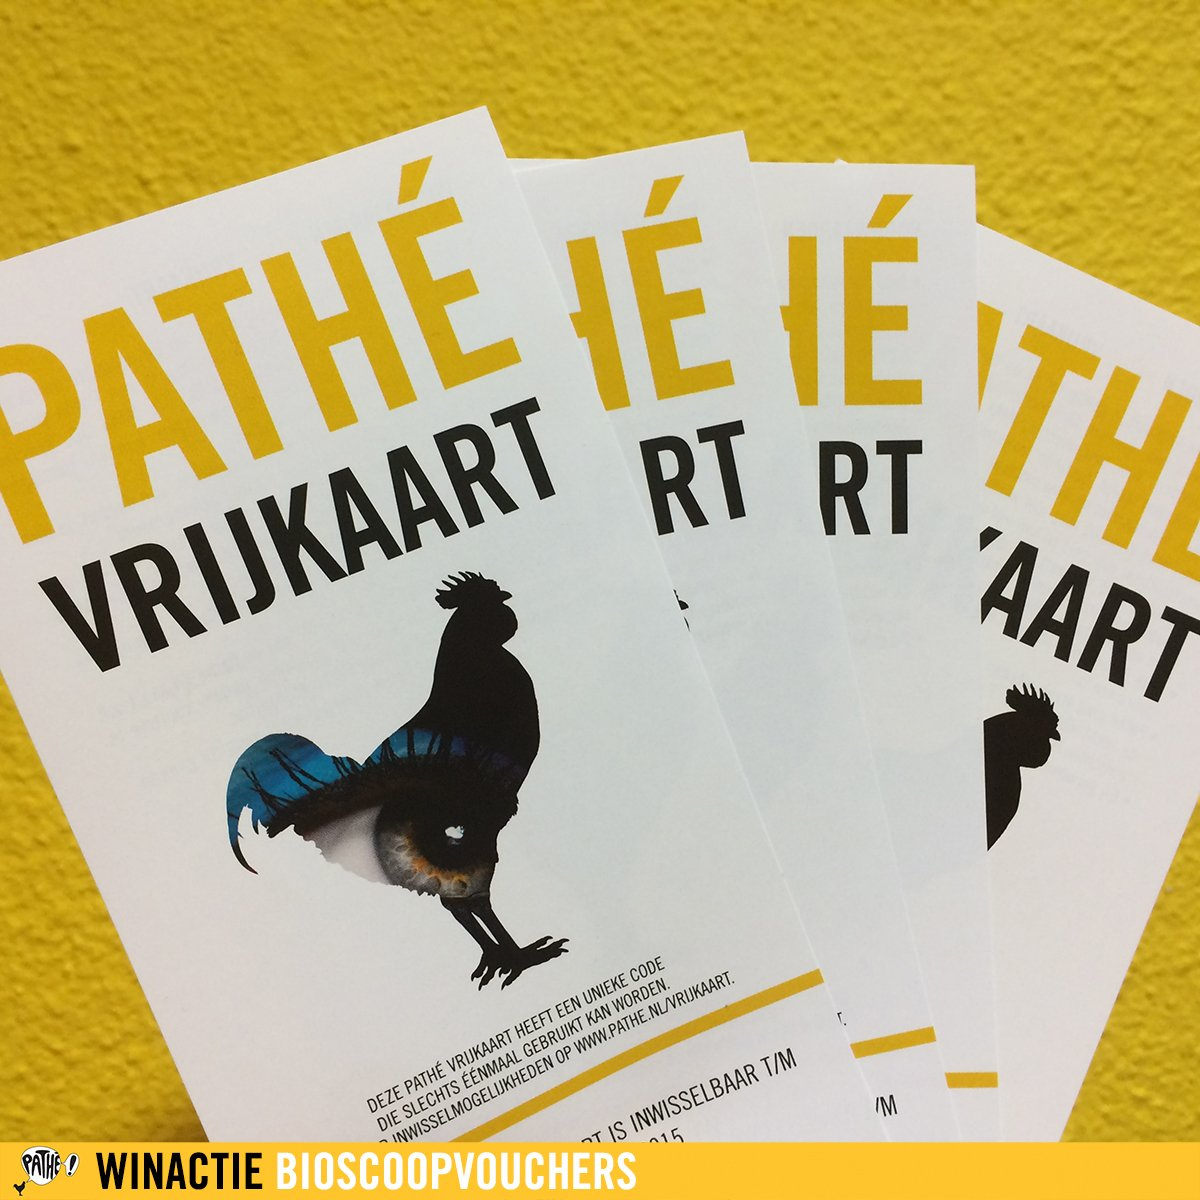 Follow @Pathe & retweet om kans te maken op 2 tickets voor de bioscoop :-) #Pathe https://t.co/8th03DvG66